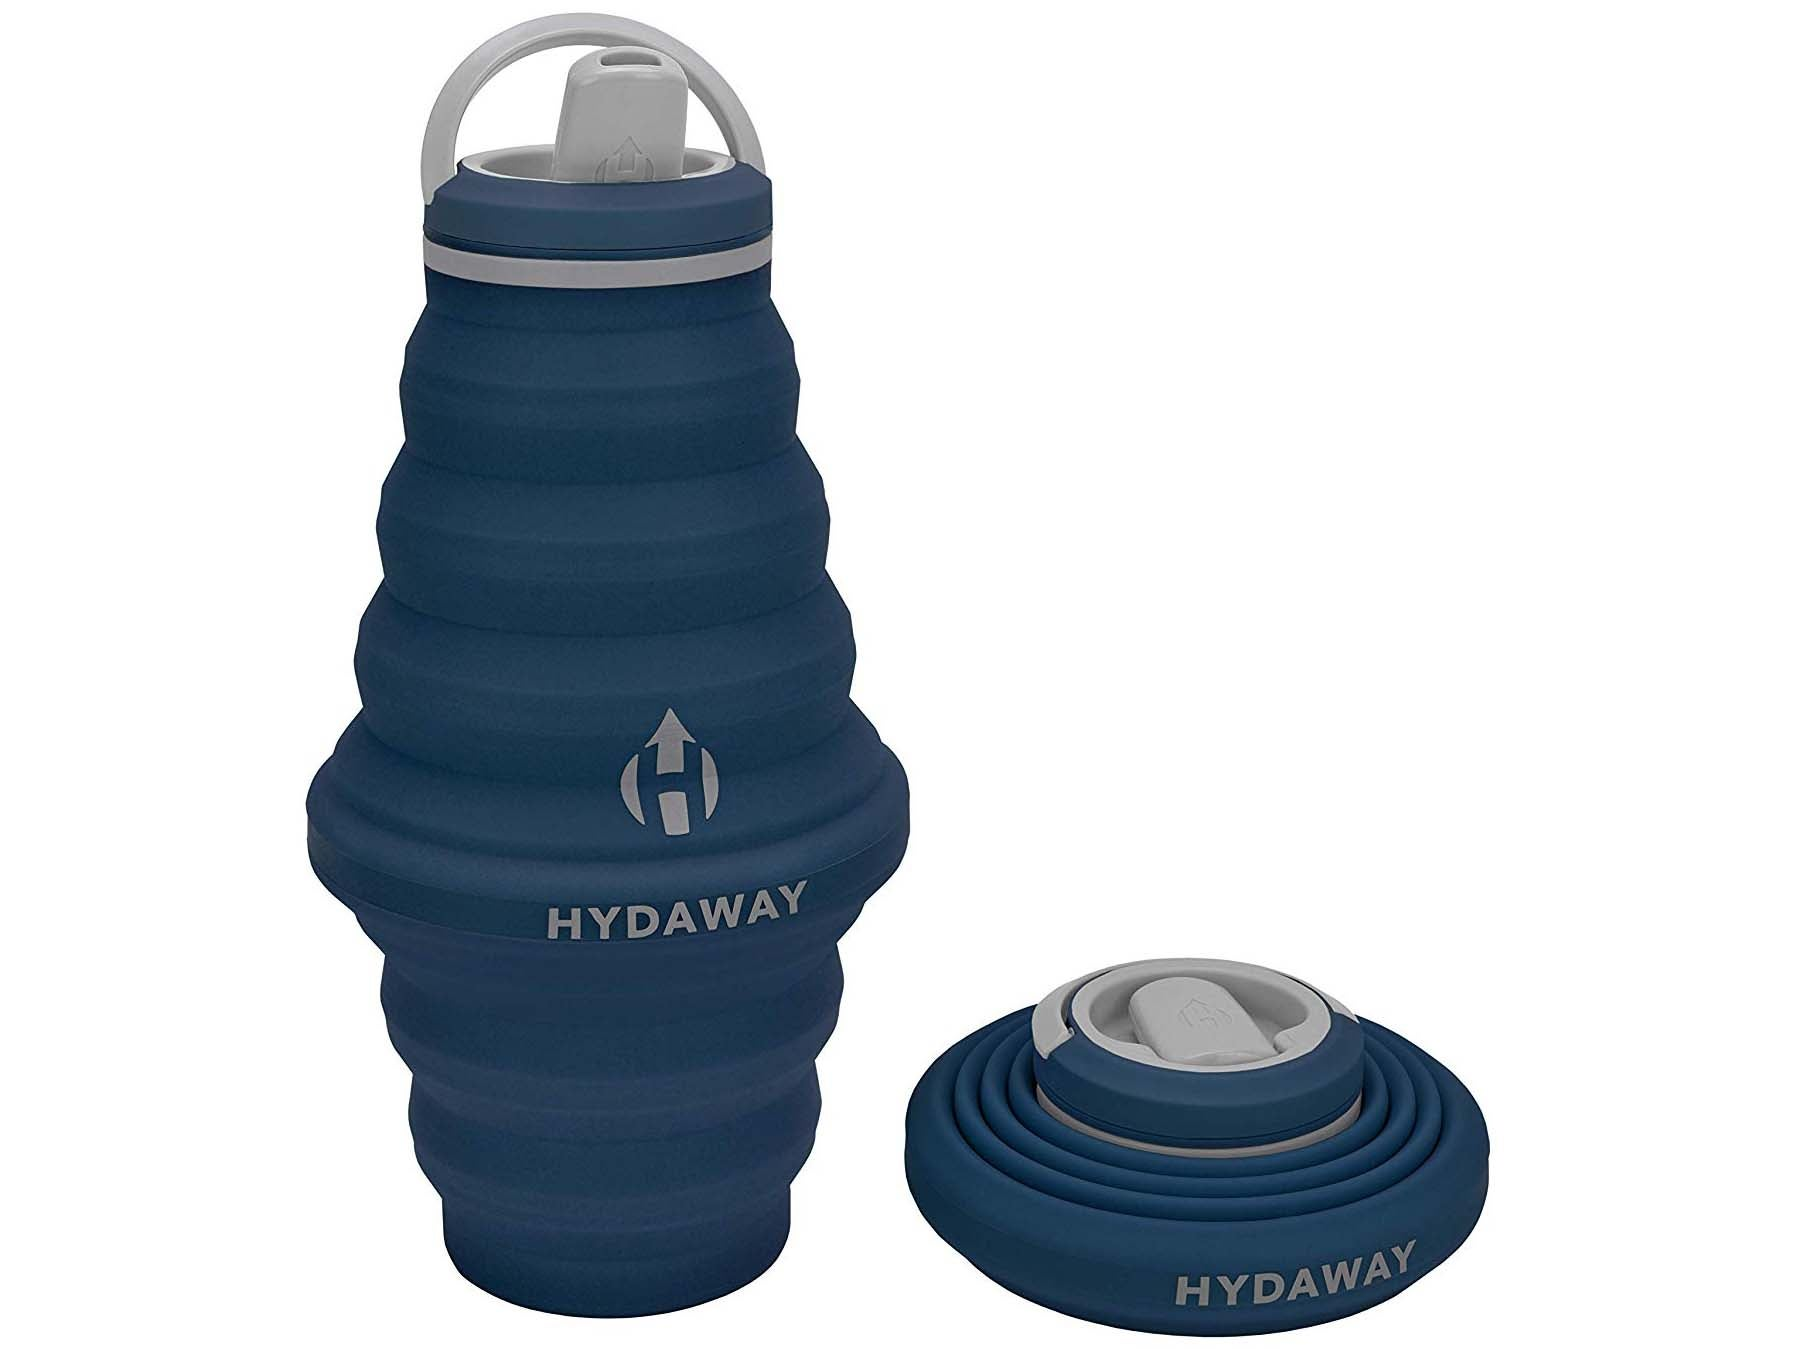 Three Things to Look for in a Collapsible Water Bottle